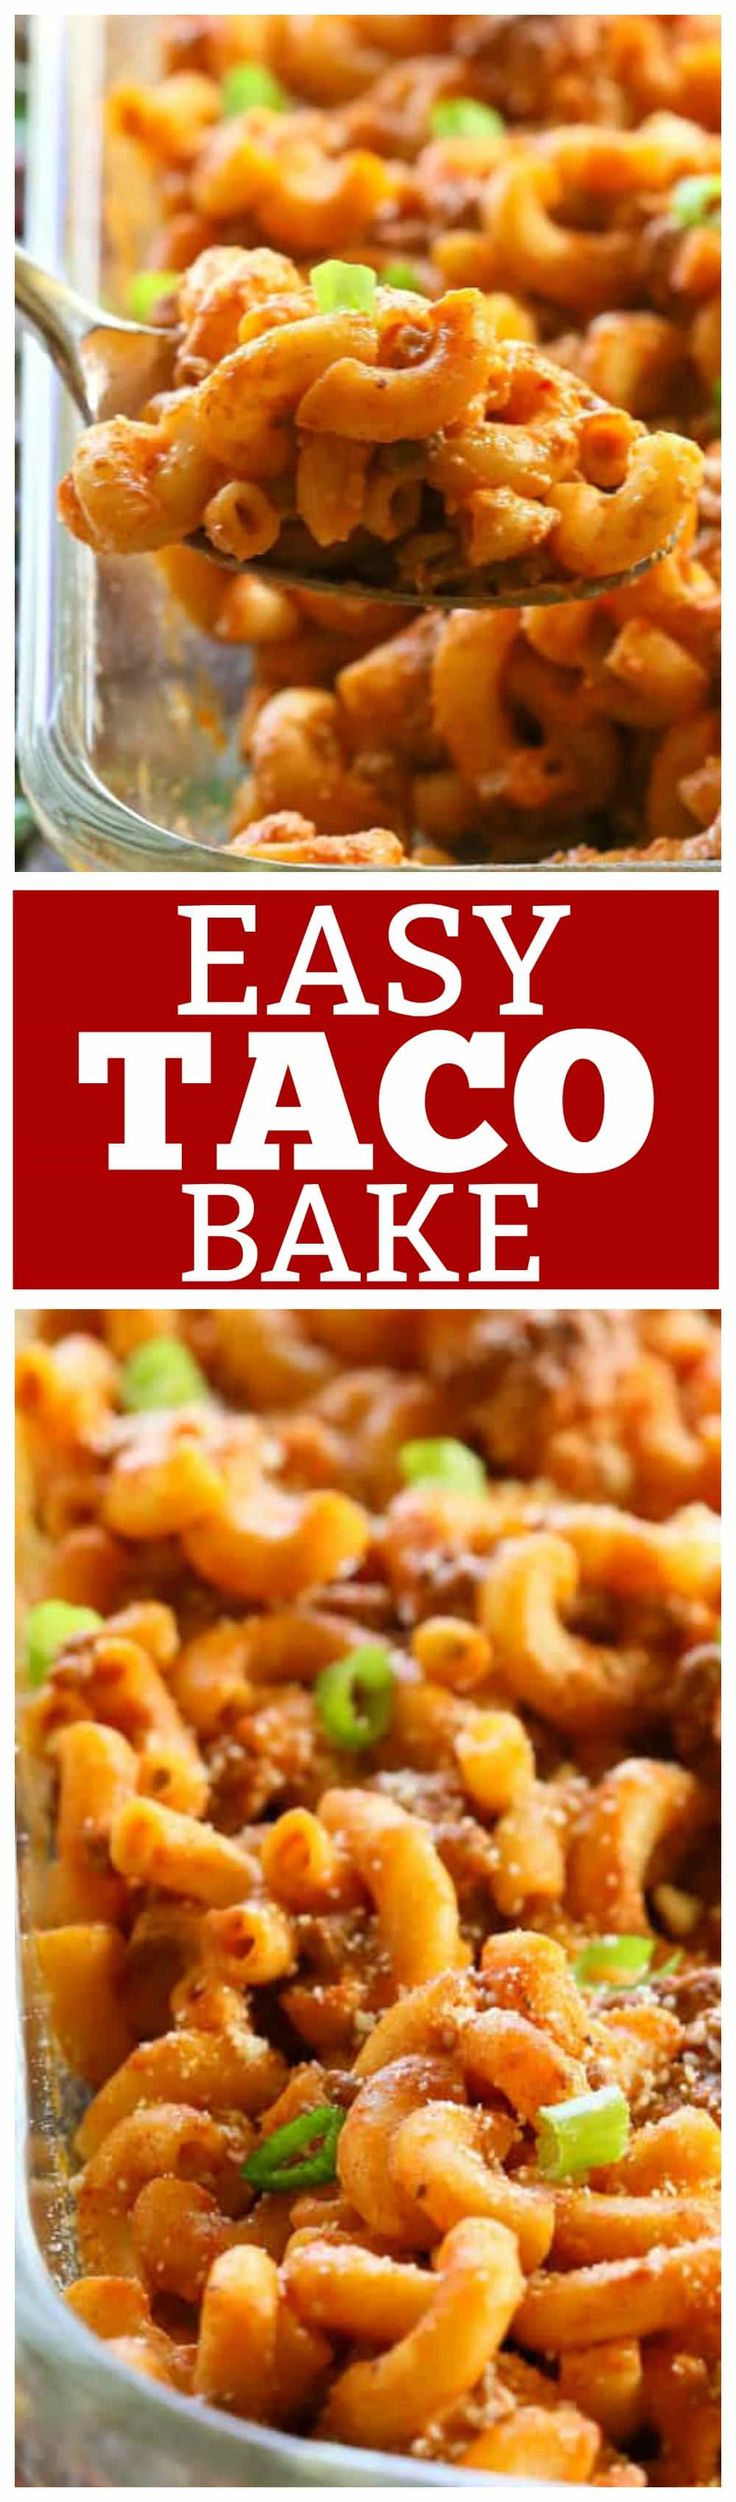 This Easy Taco Bake is apasta dish that tastes just like a taco!It can easily be made ahead of time and freezes great.